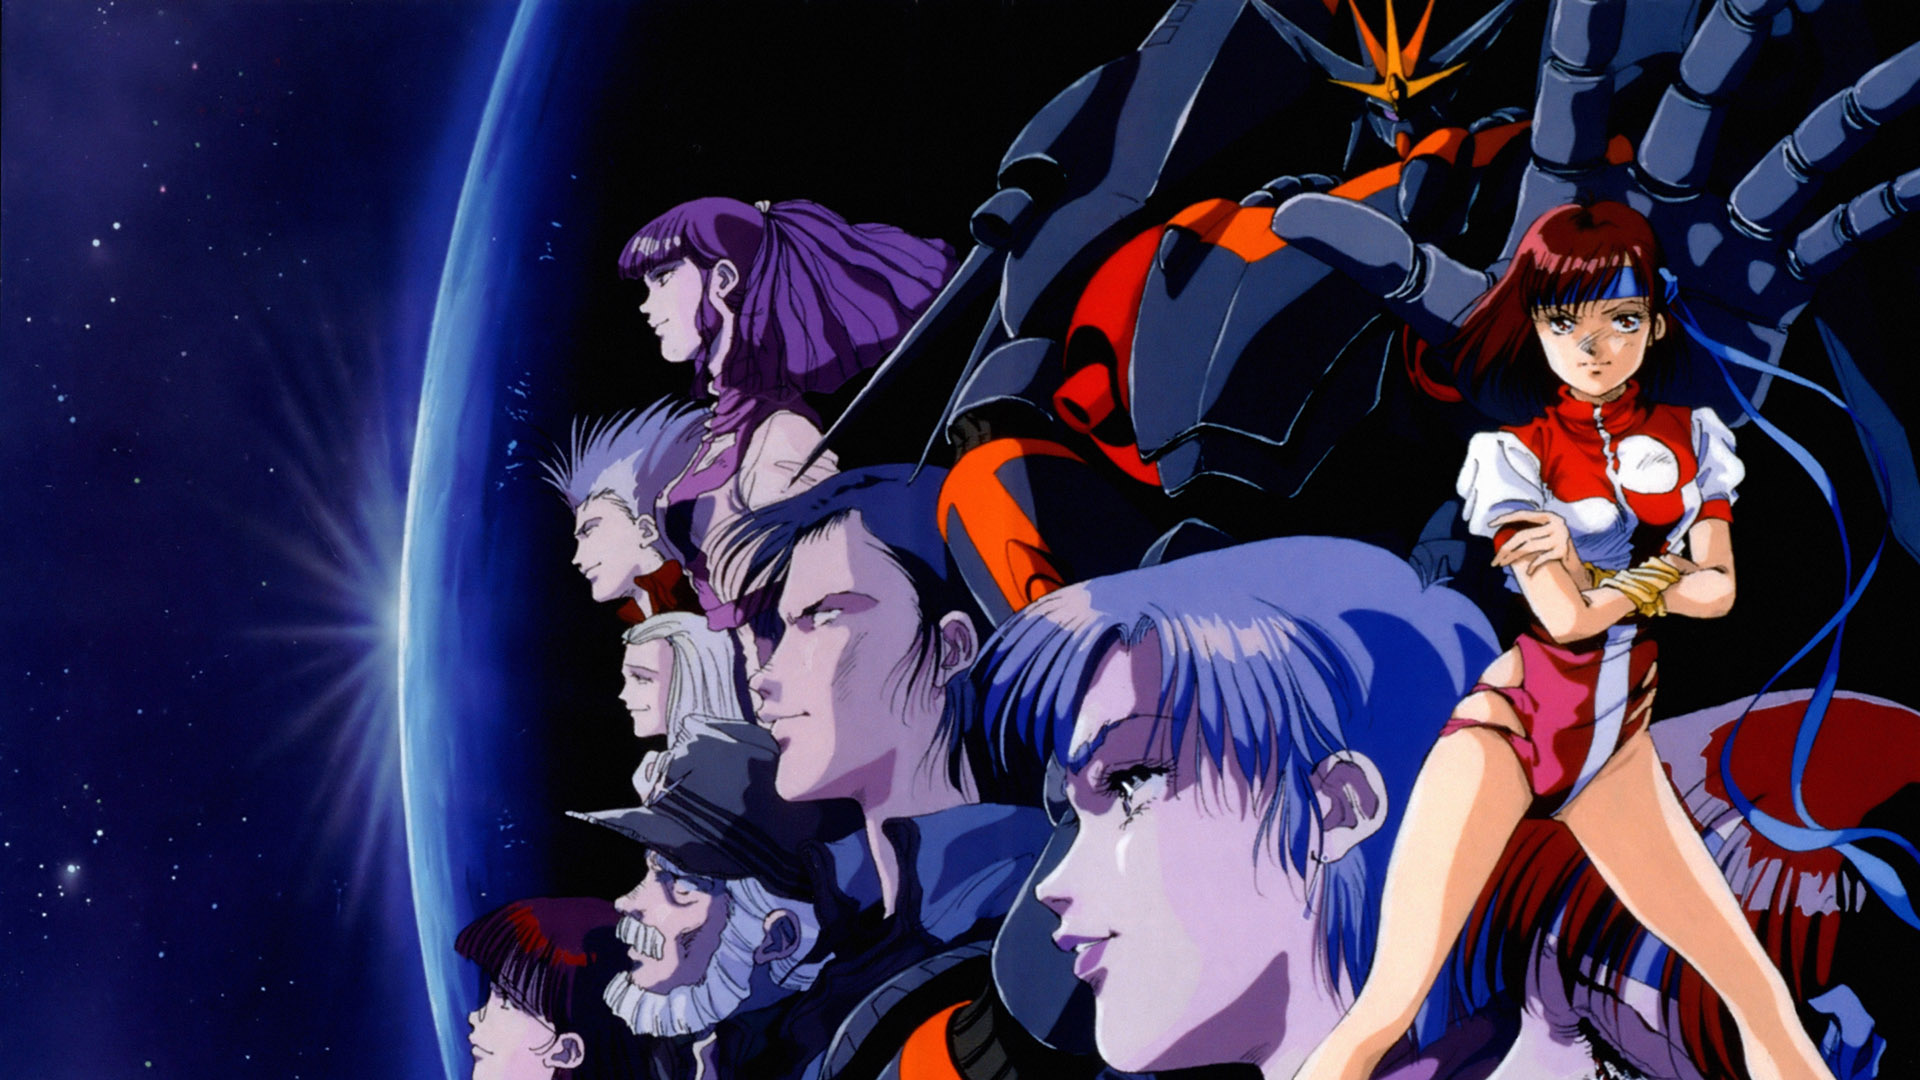 Aim for the Top! Gunbuster